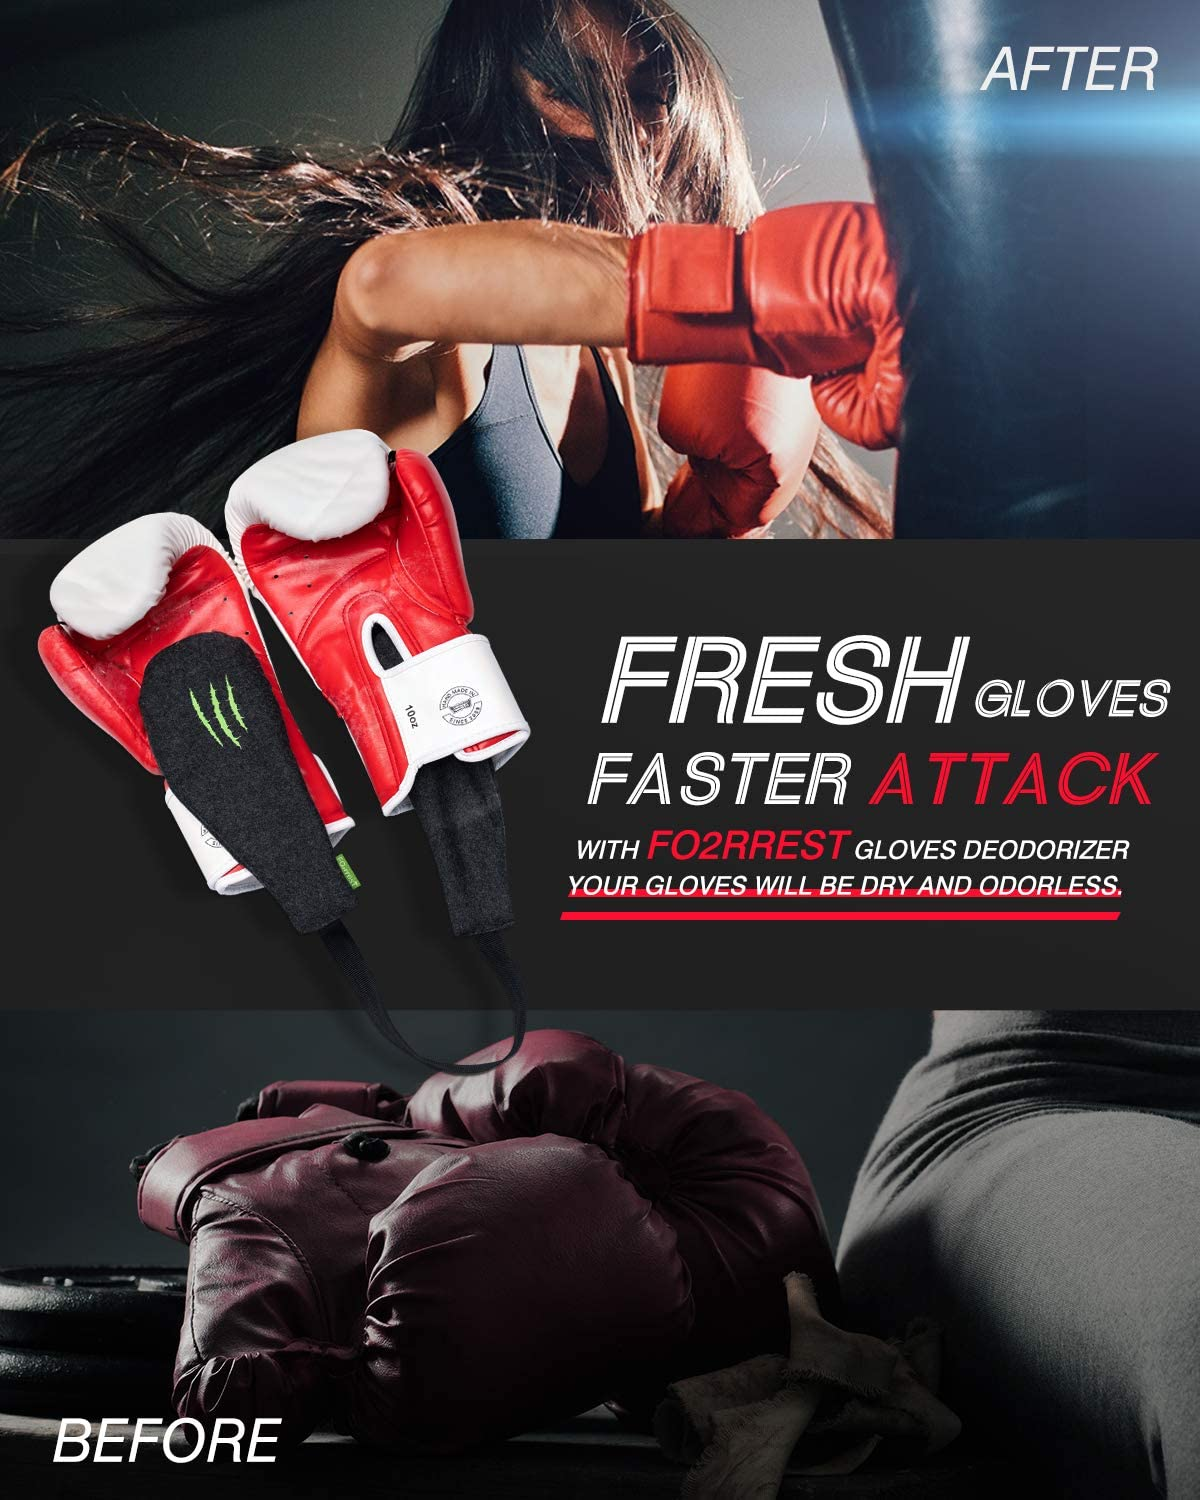 FO2RREST Glove Deodorizers for Boxing - Odor Eliminator and Moisture Absorber for Sports Gloves, Air Purifying Bags : Sports & Outdoors